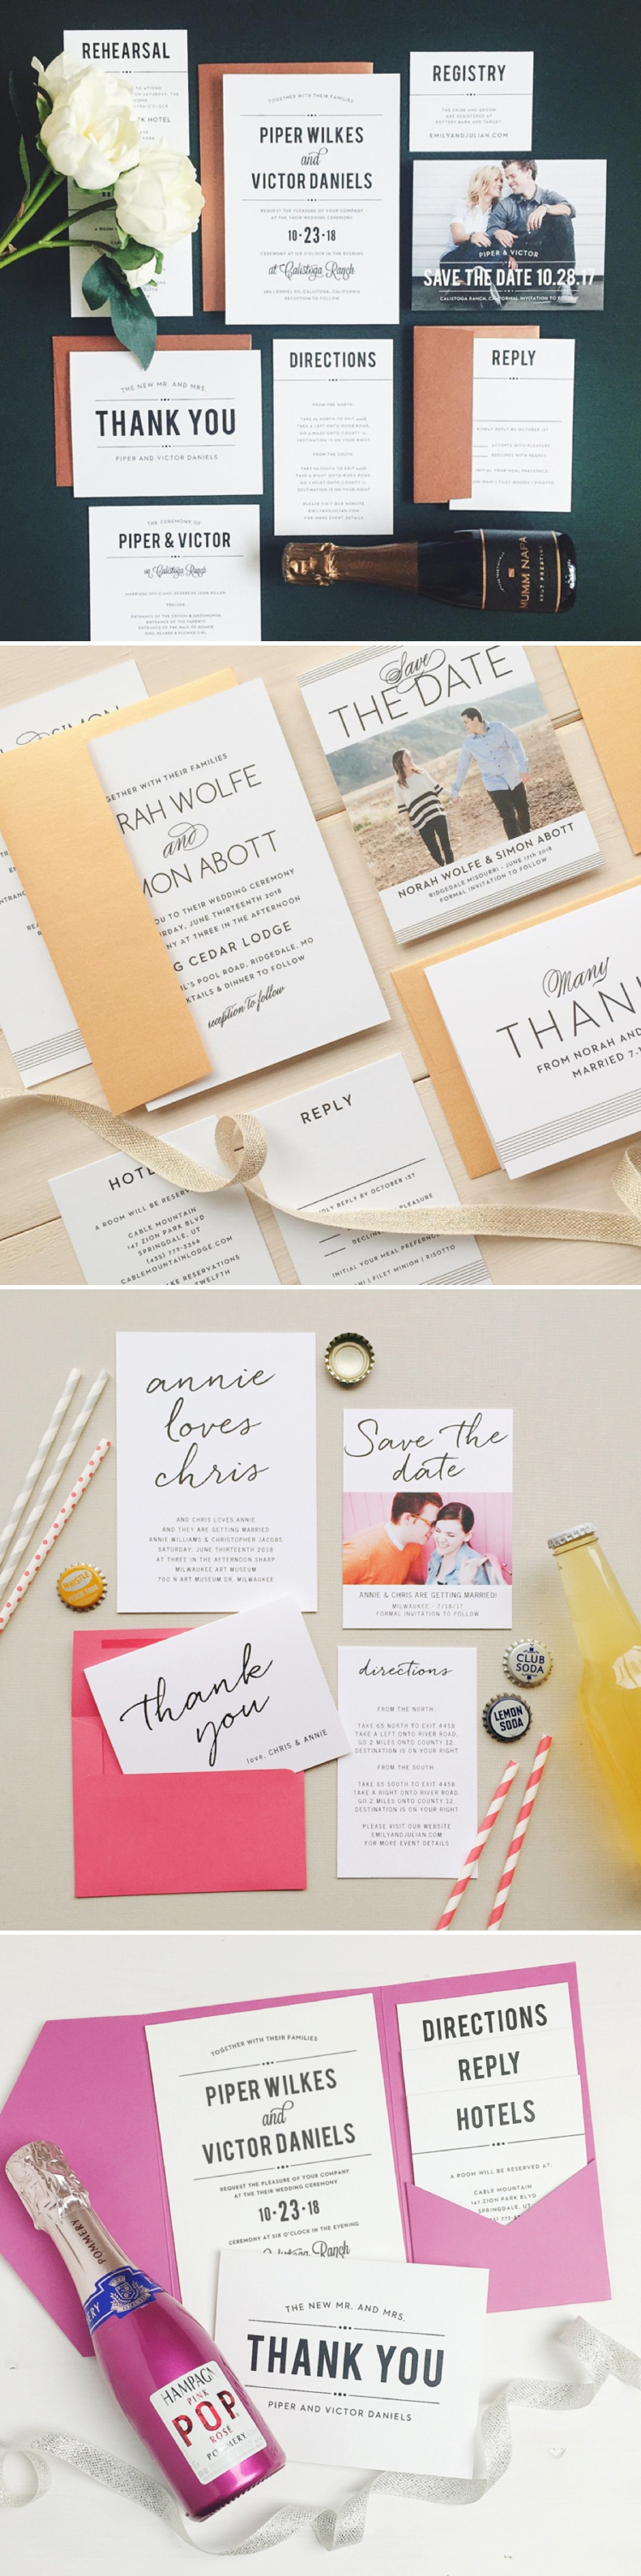 basic-invite-wedding-stationery_0793